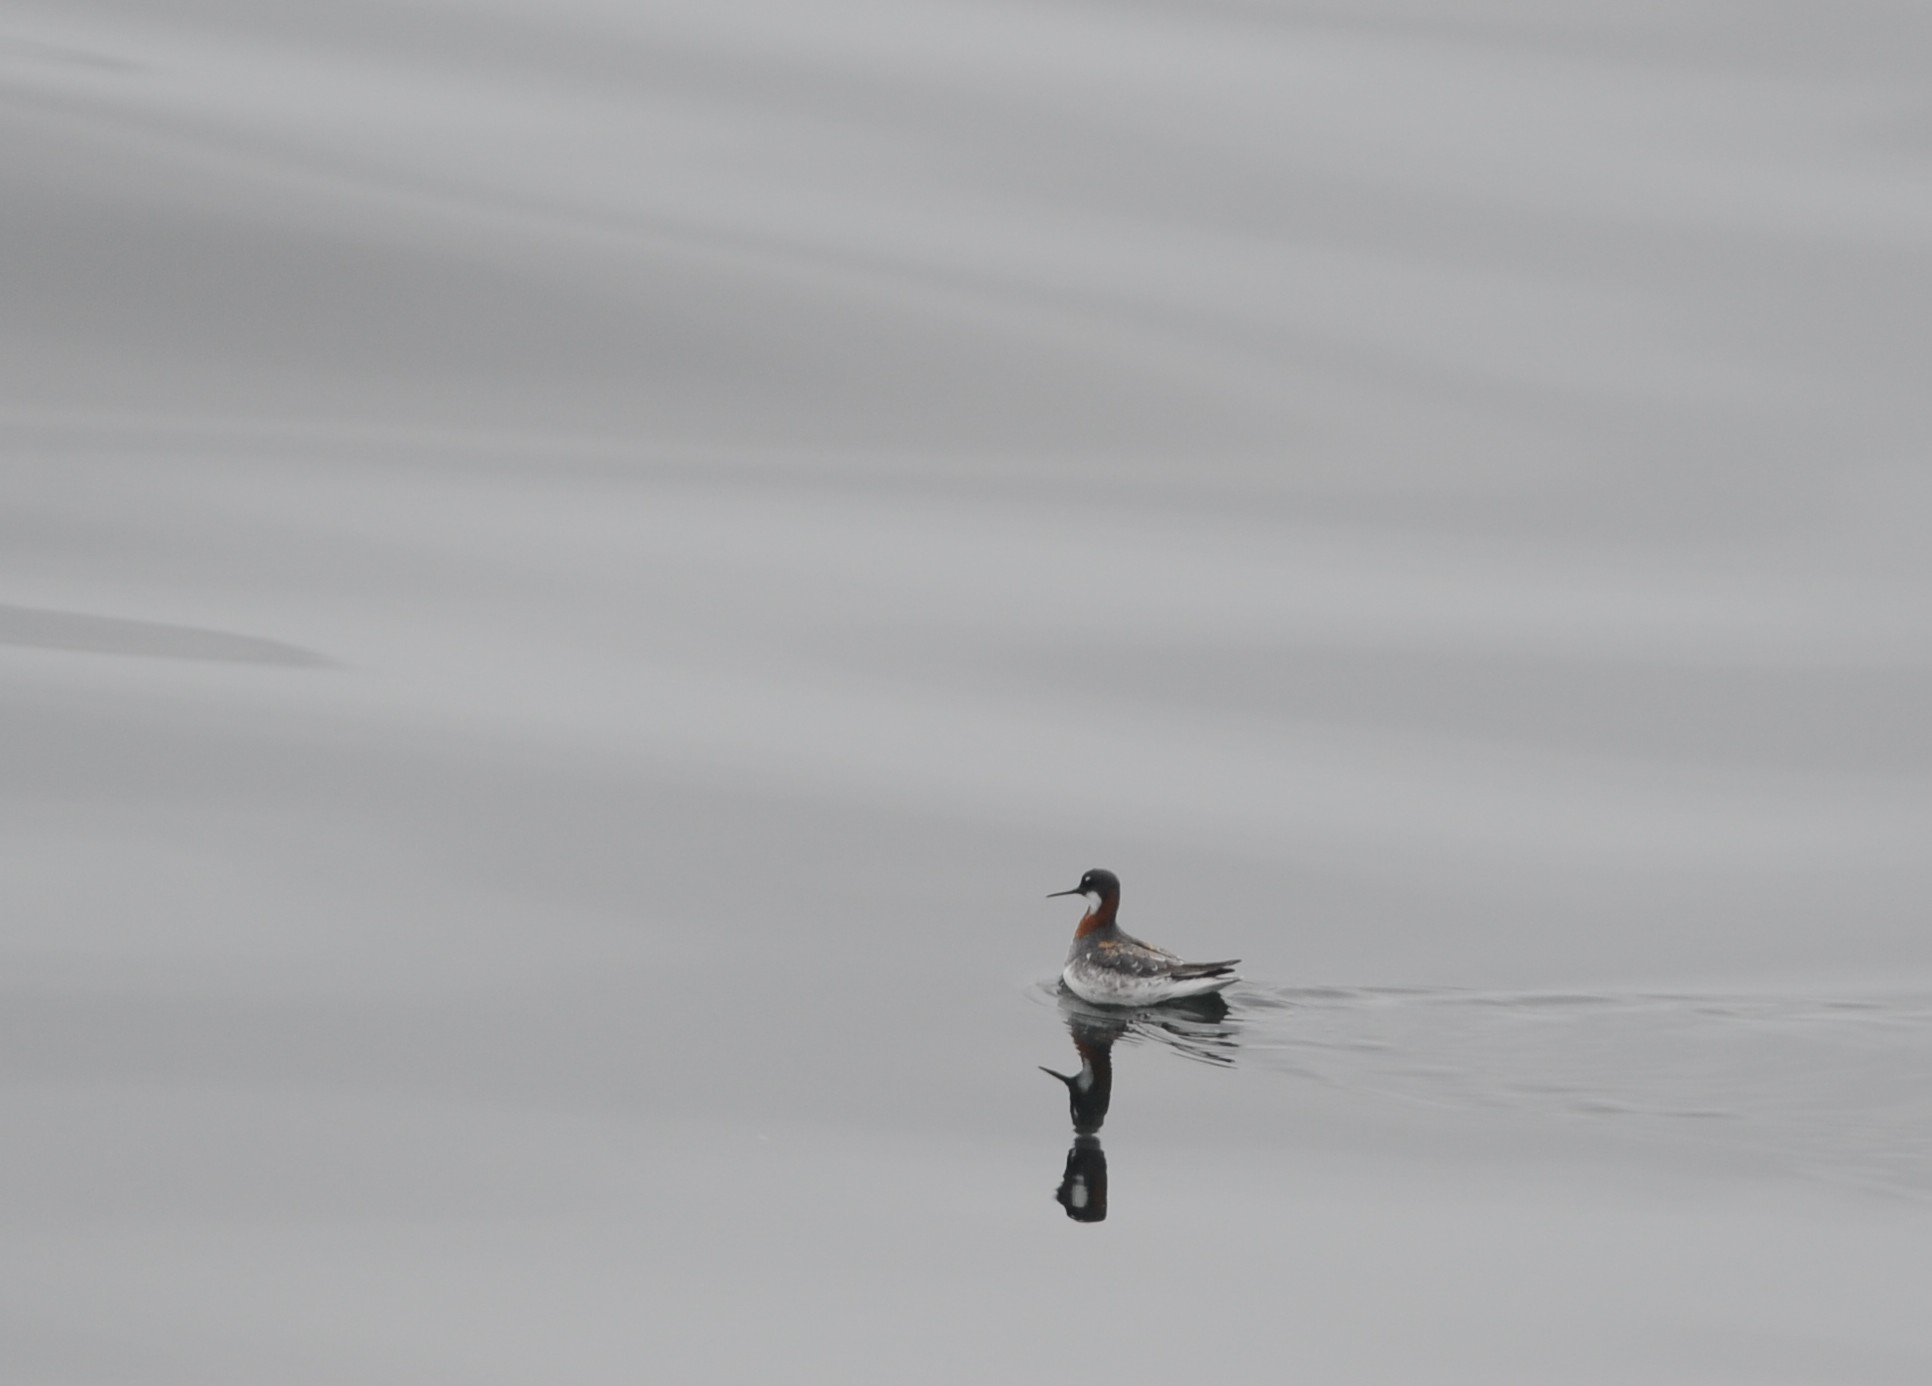 A red necked phalarope near the Farallon Islands.